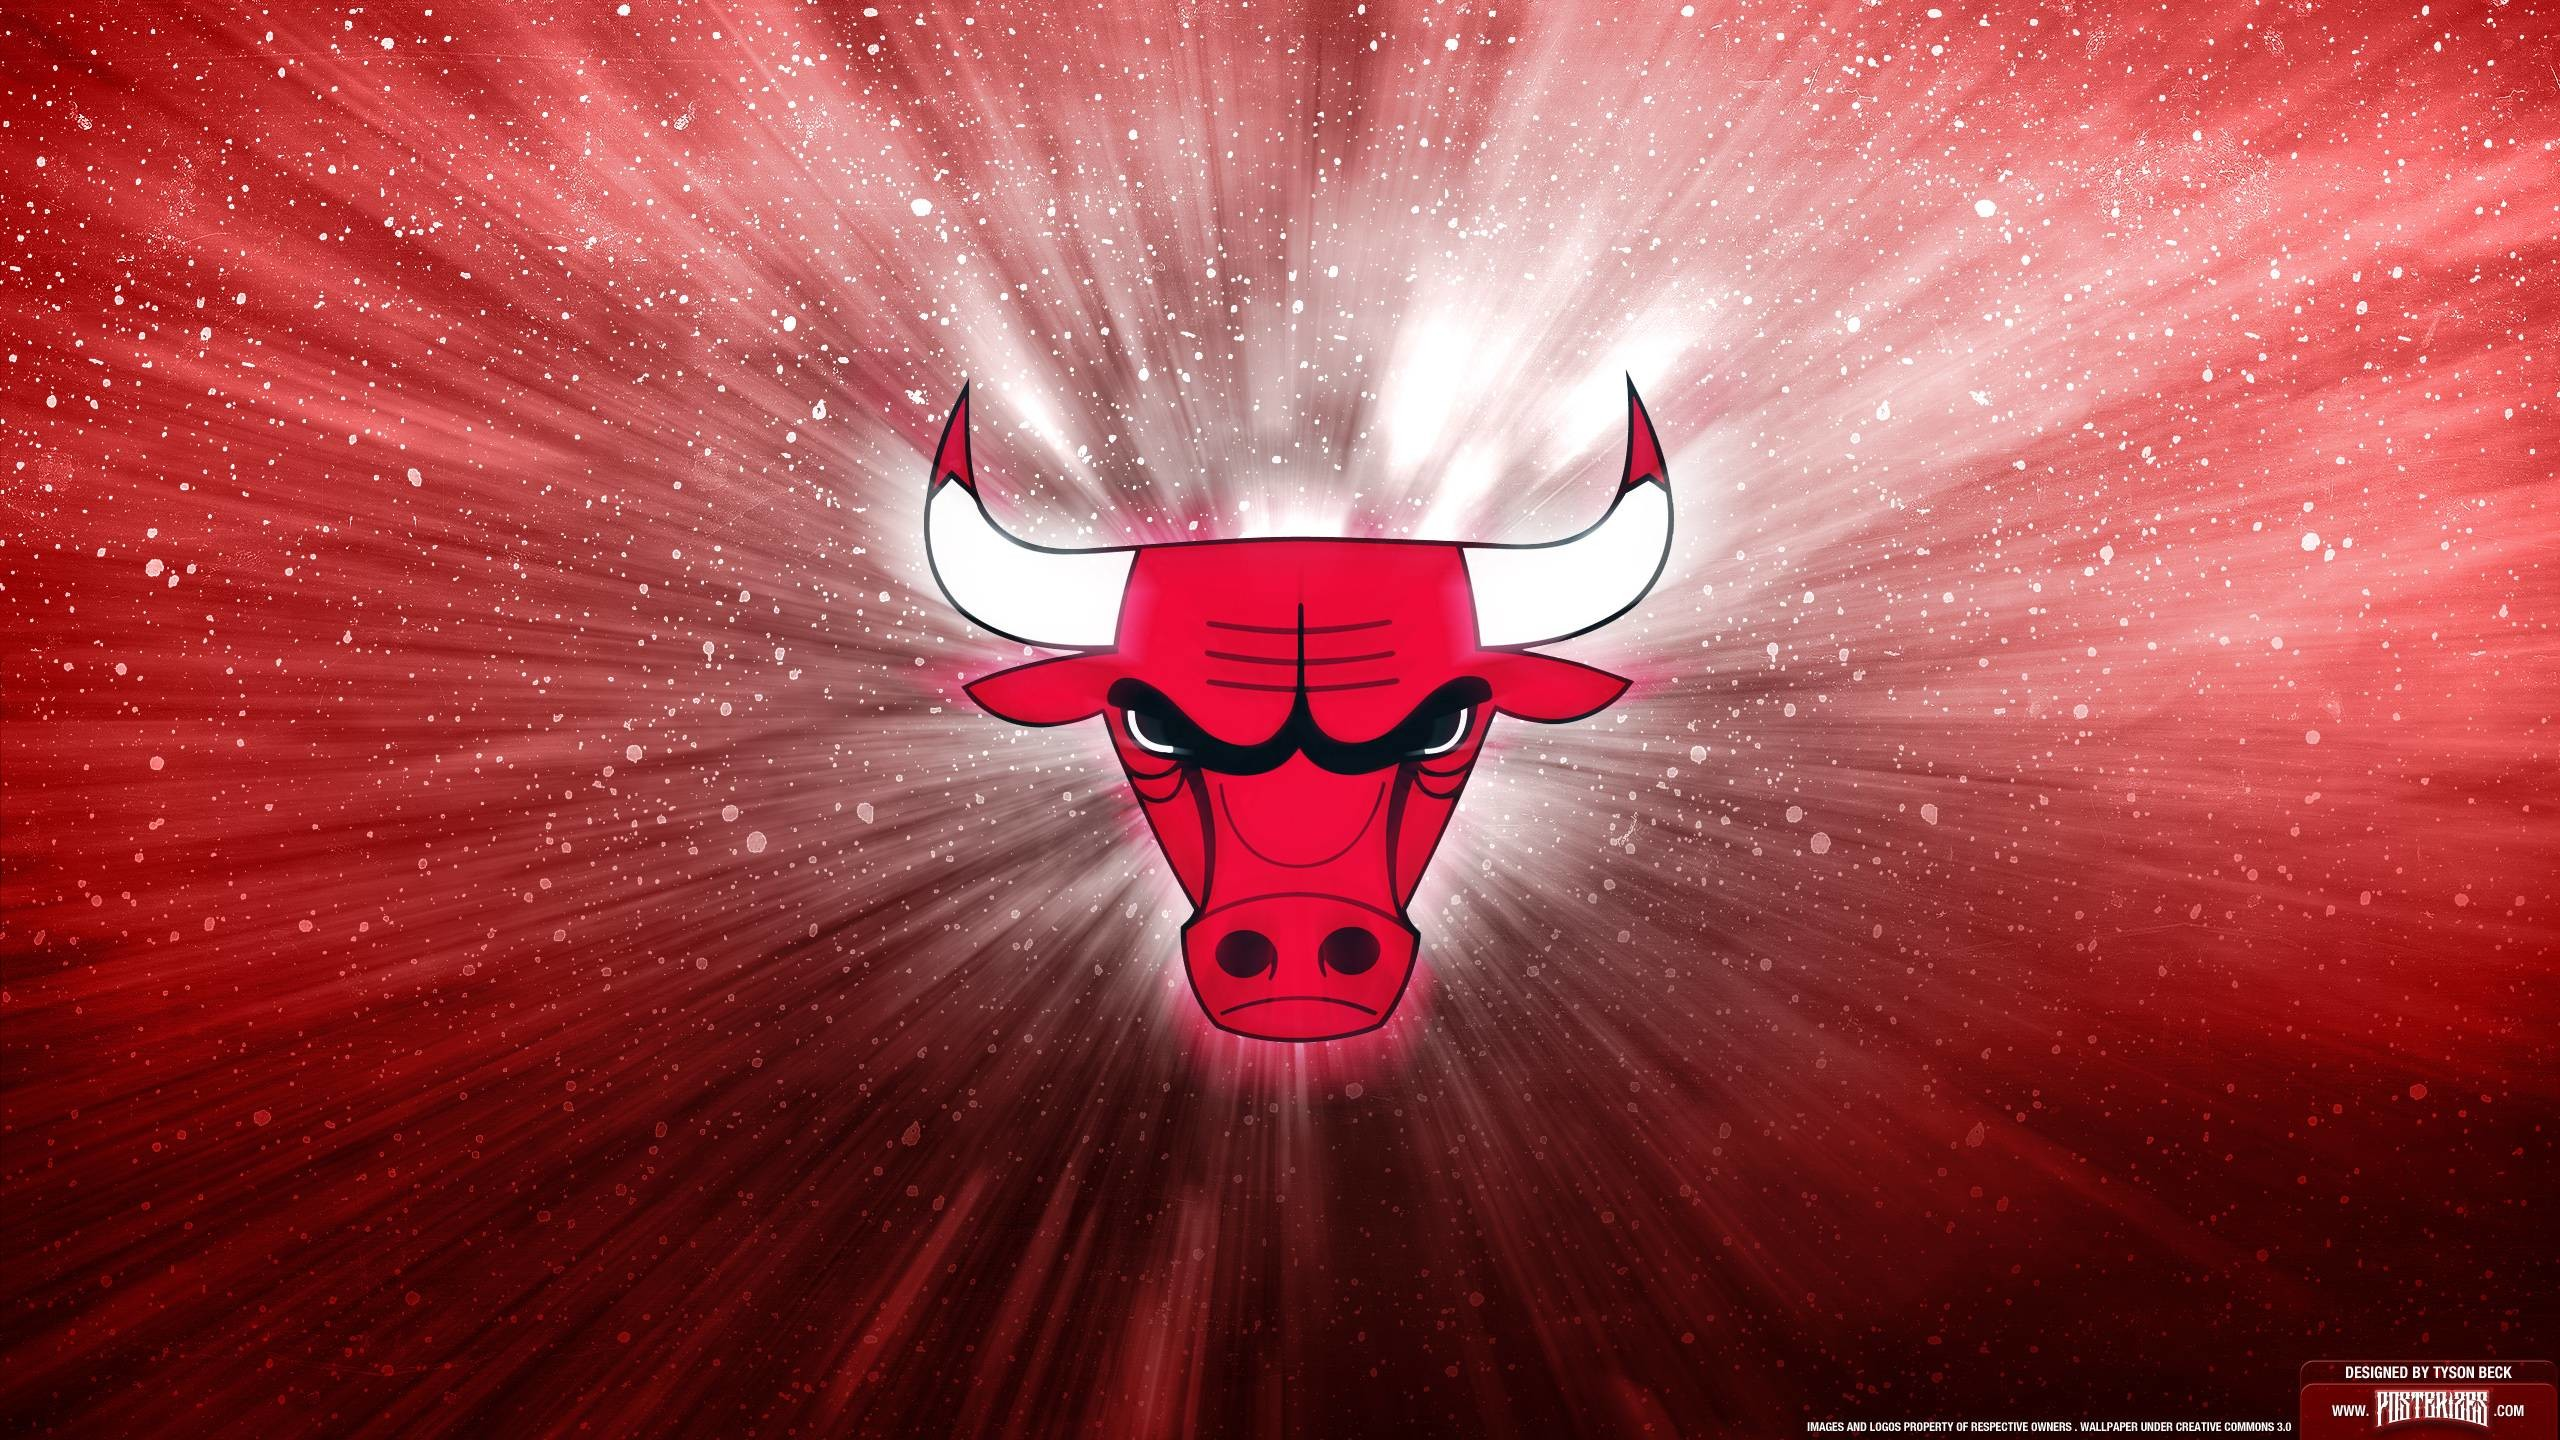 2560x1440 Chicago Bulls Wallpaper Hd | HD Wallpapers | Pinterest | Hd wallpaper and  Wallpaper